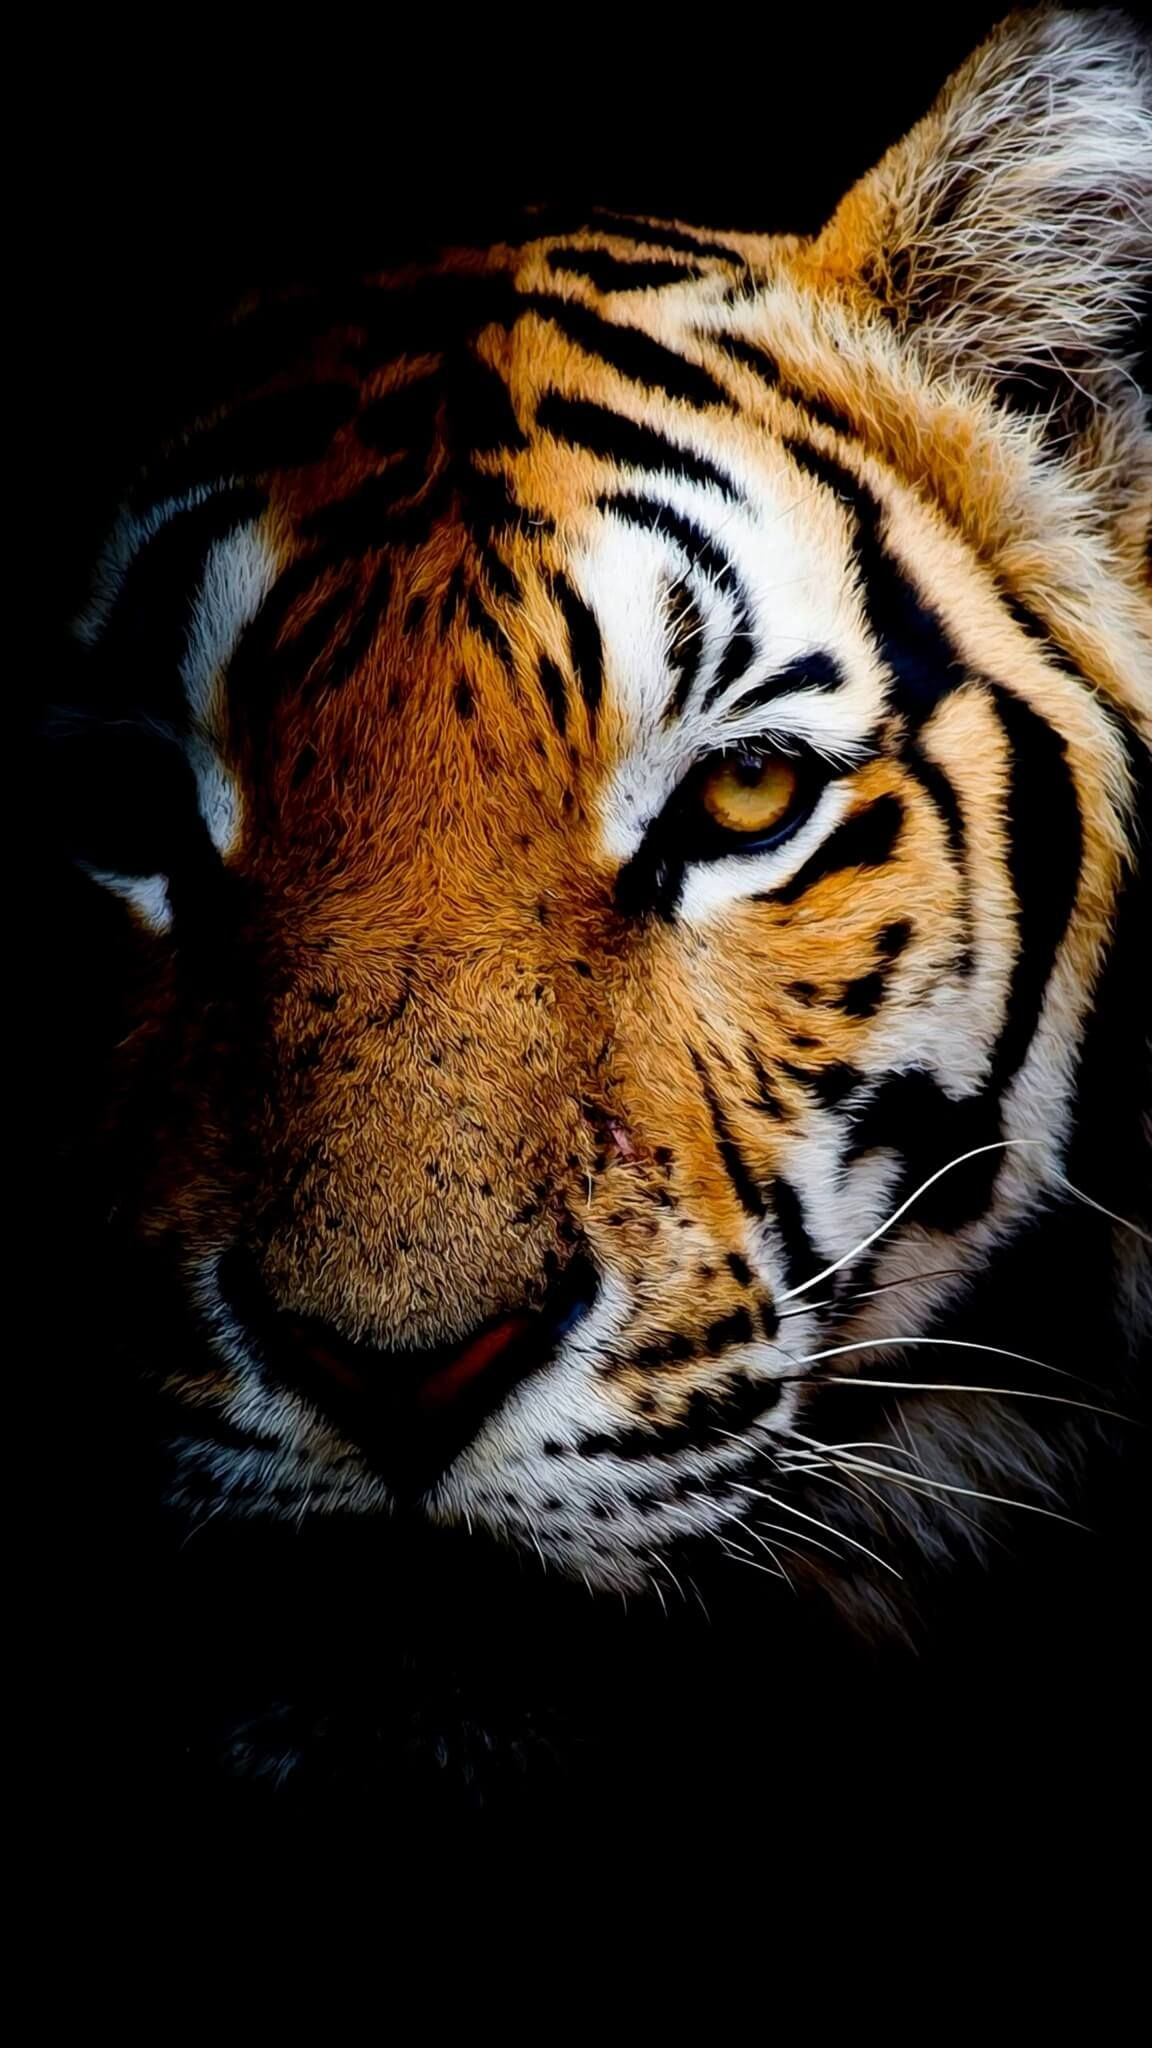 50 Mobile Wallpaper Inspiration For Those In Need Of A Change Mobile Wallpaper Tiger Wallpaper Iphone Animal Wallpaper